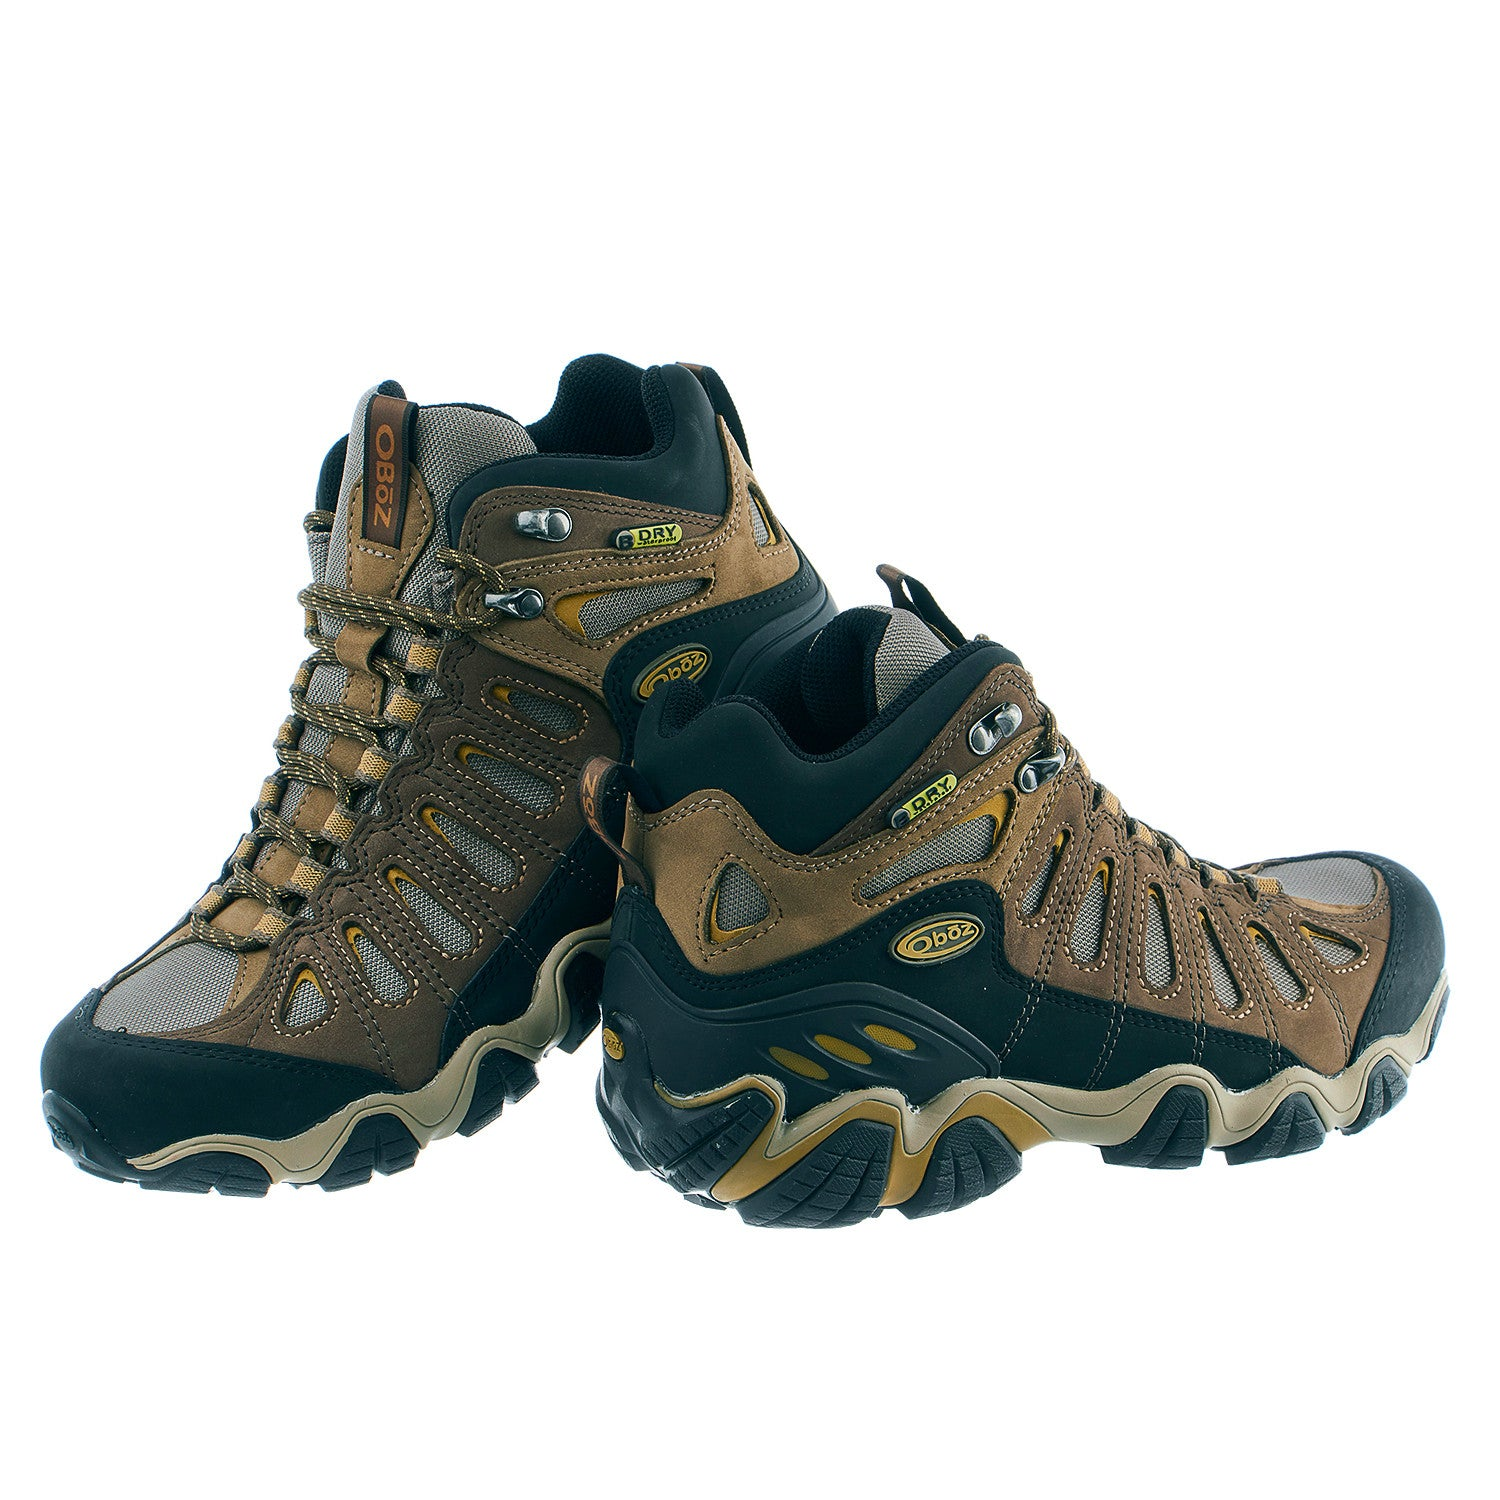 9117776a664 Oboz Sawtooth Mid BDRY Hiking Boot - Men's